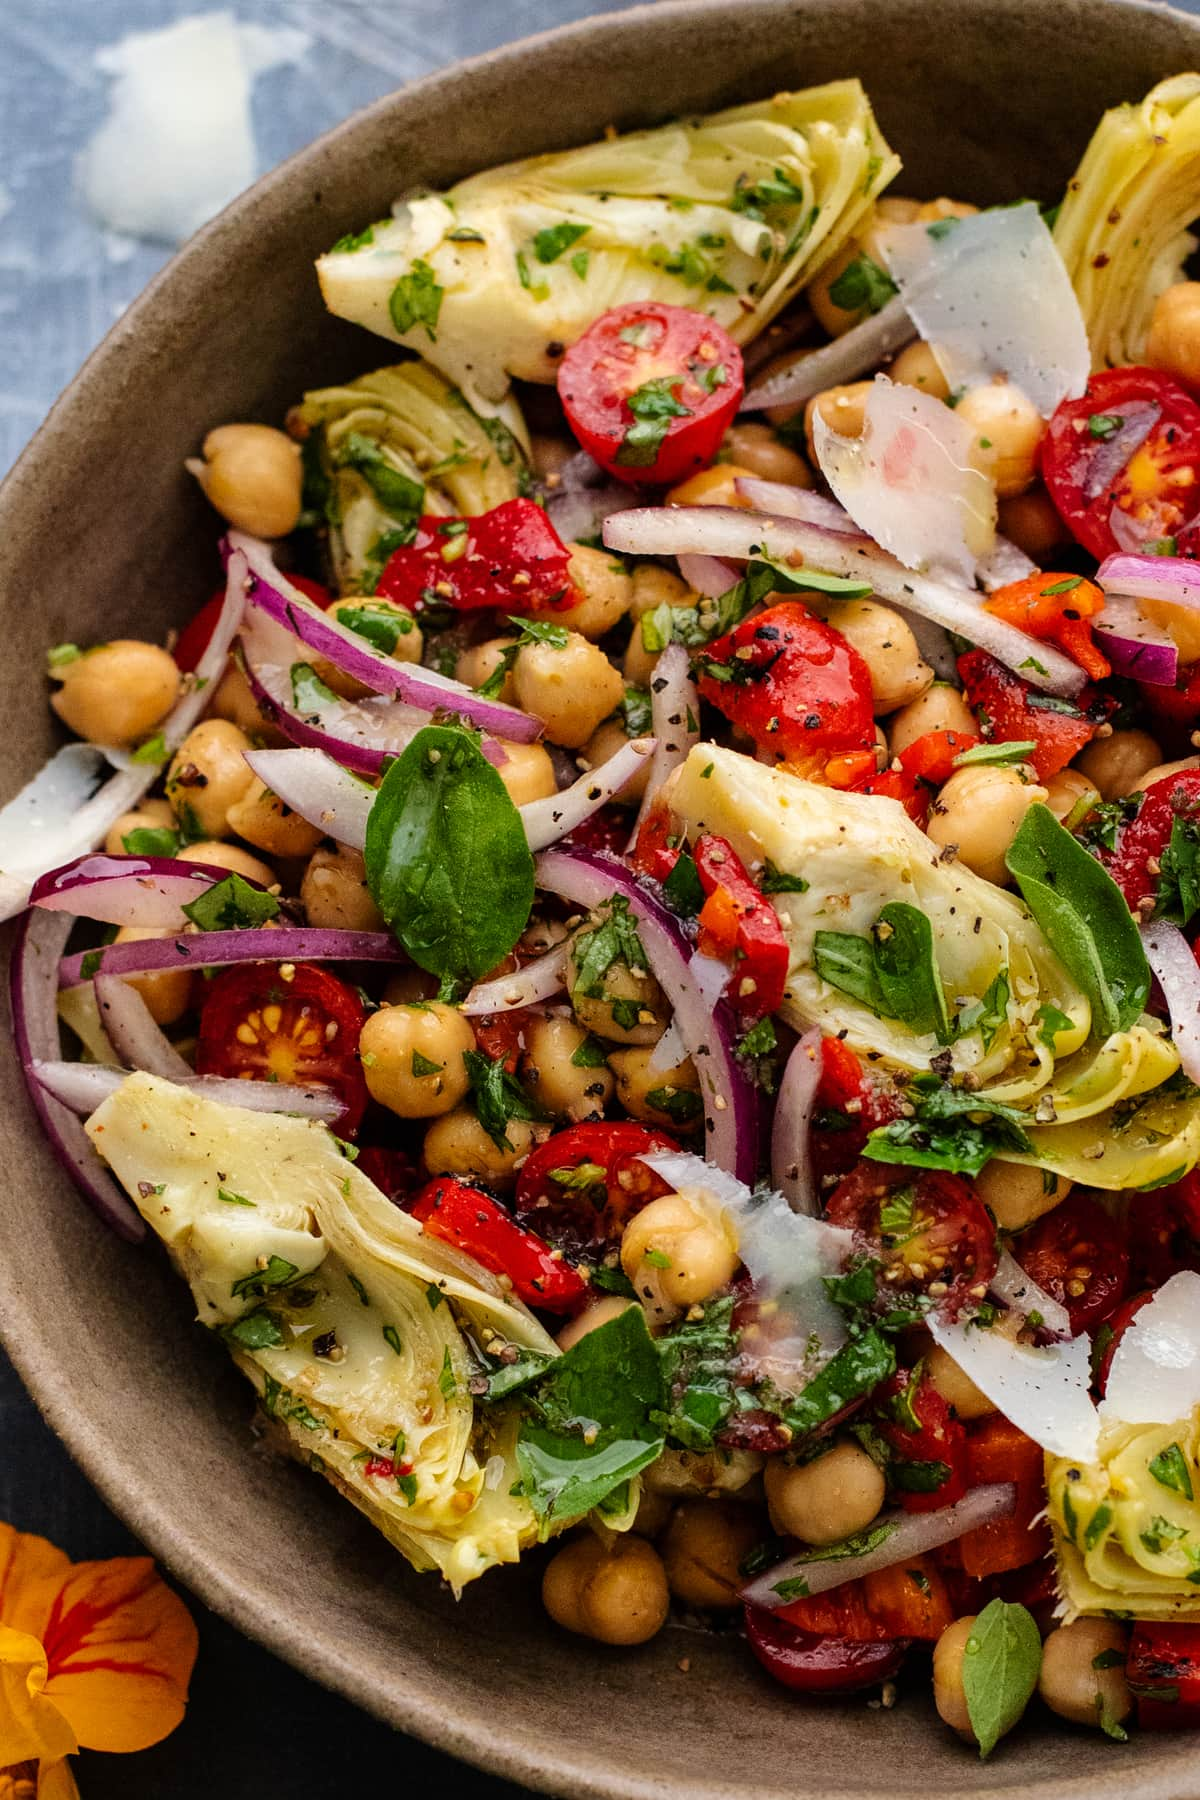 close up of artichokes and garbanzo bean salad in a ceramic bowl.